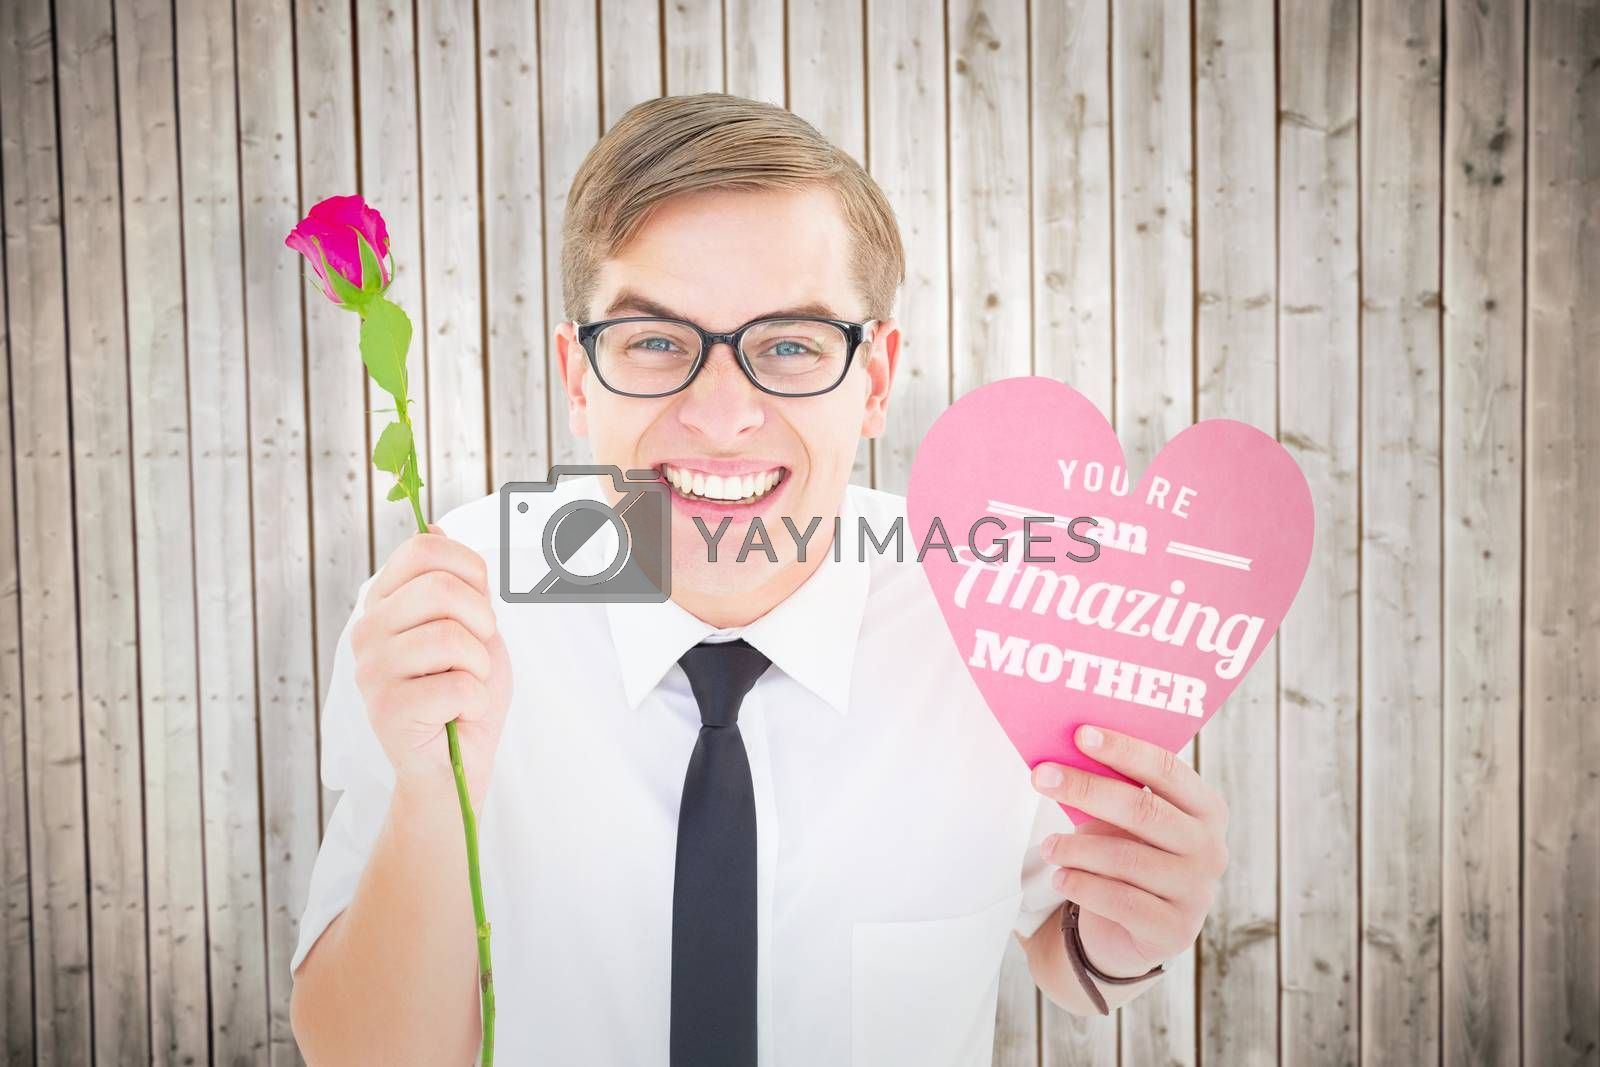 Geeky hipster holding a red rose and heart card against wooden planks background